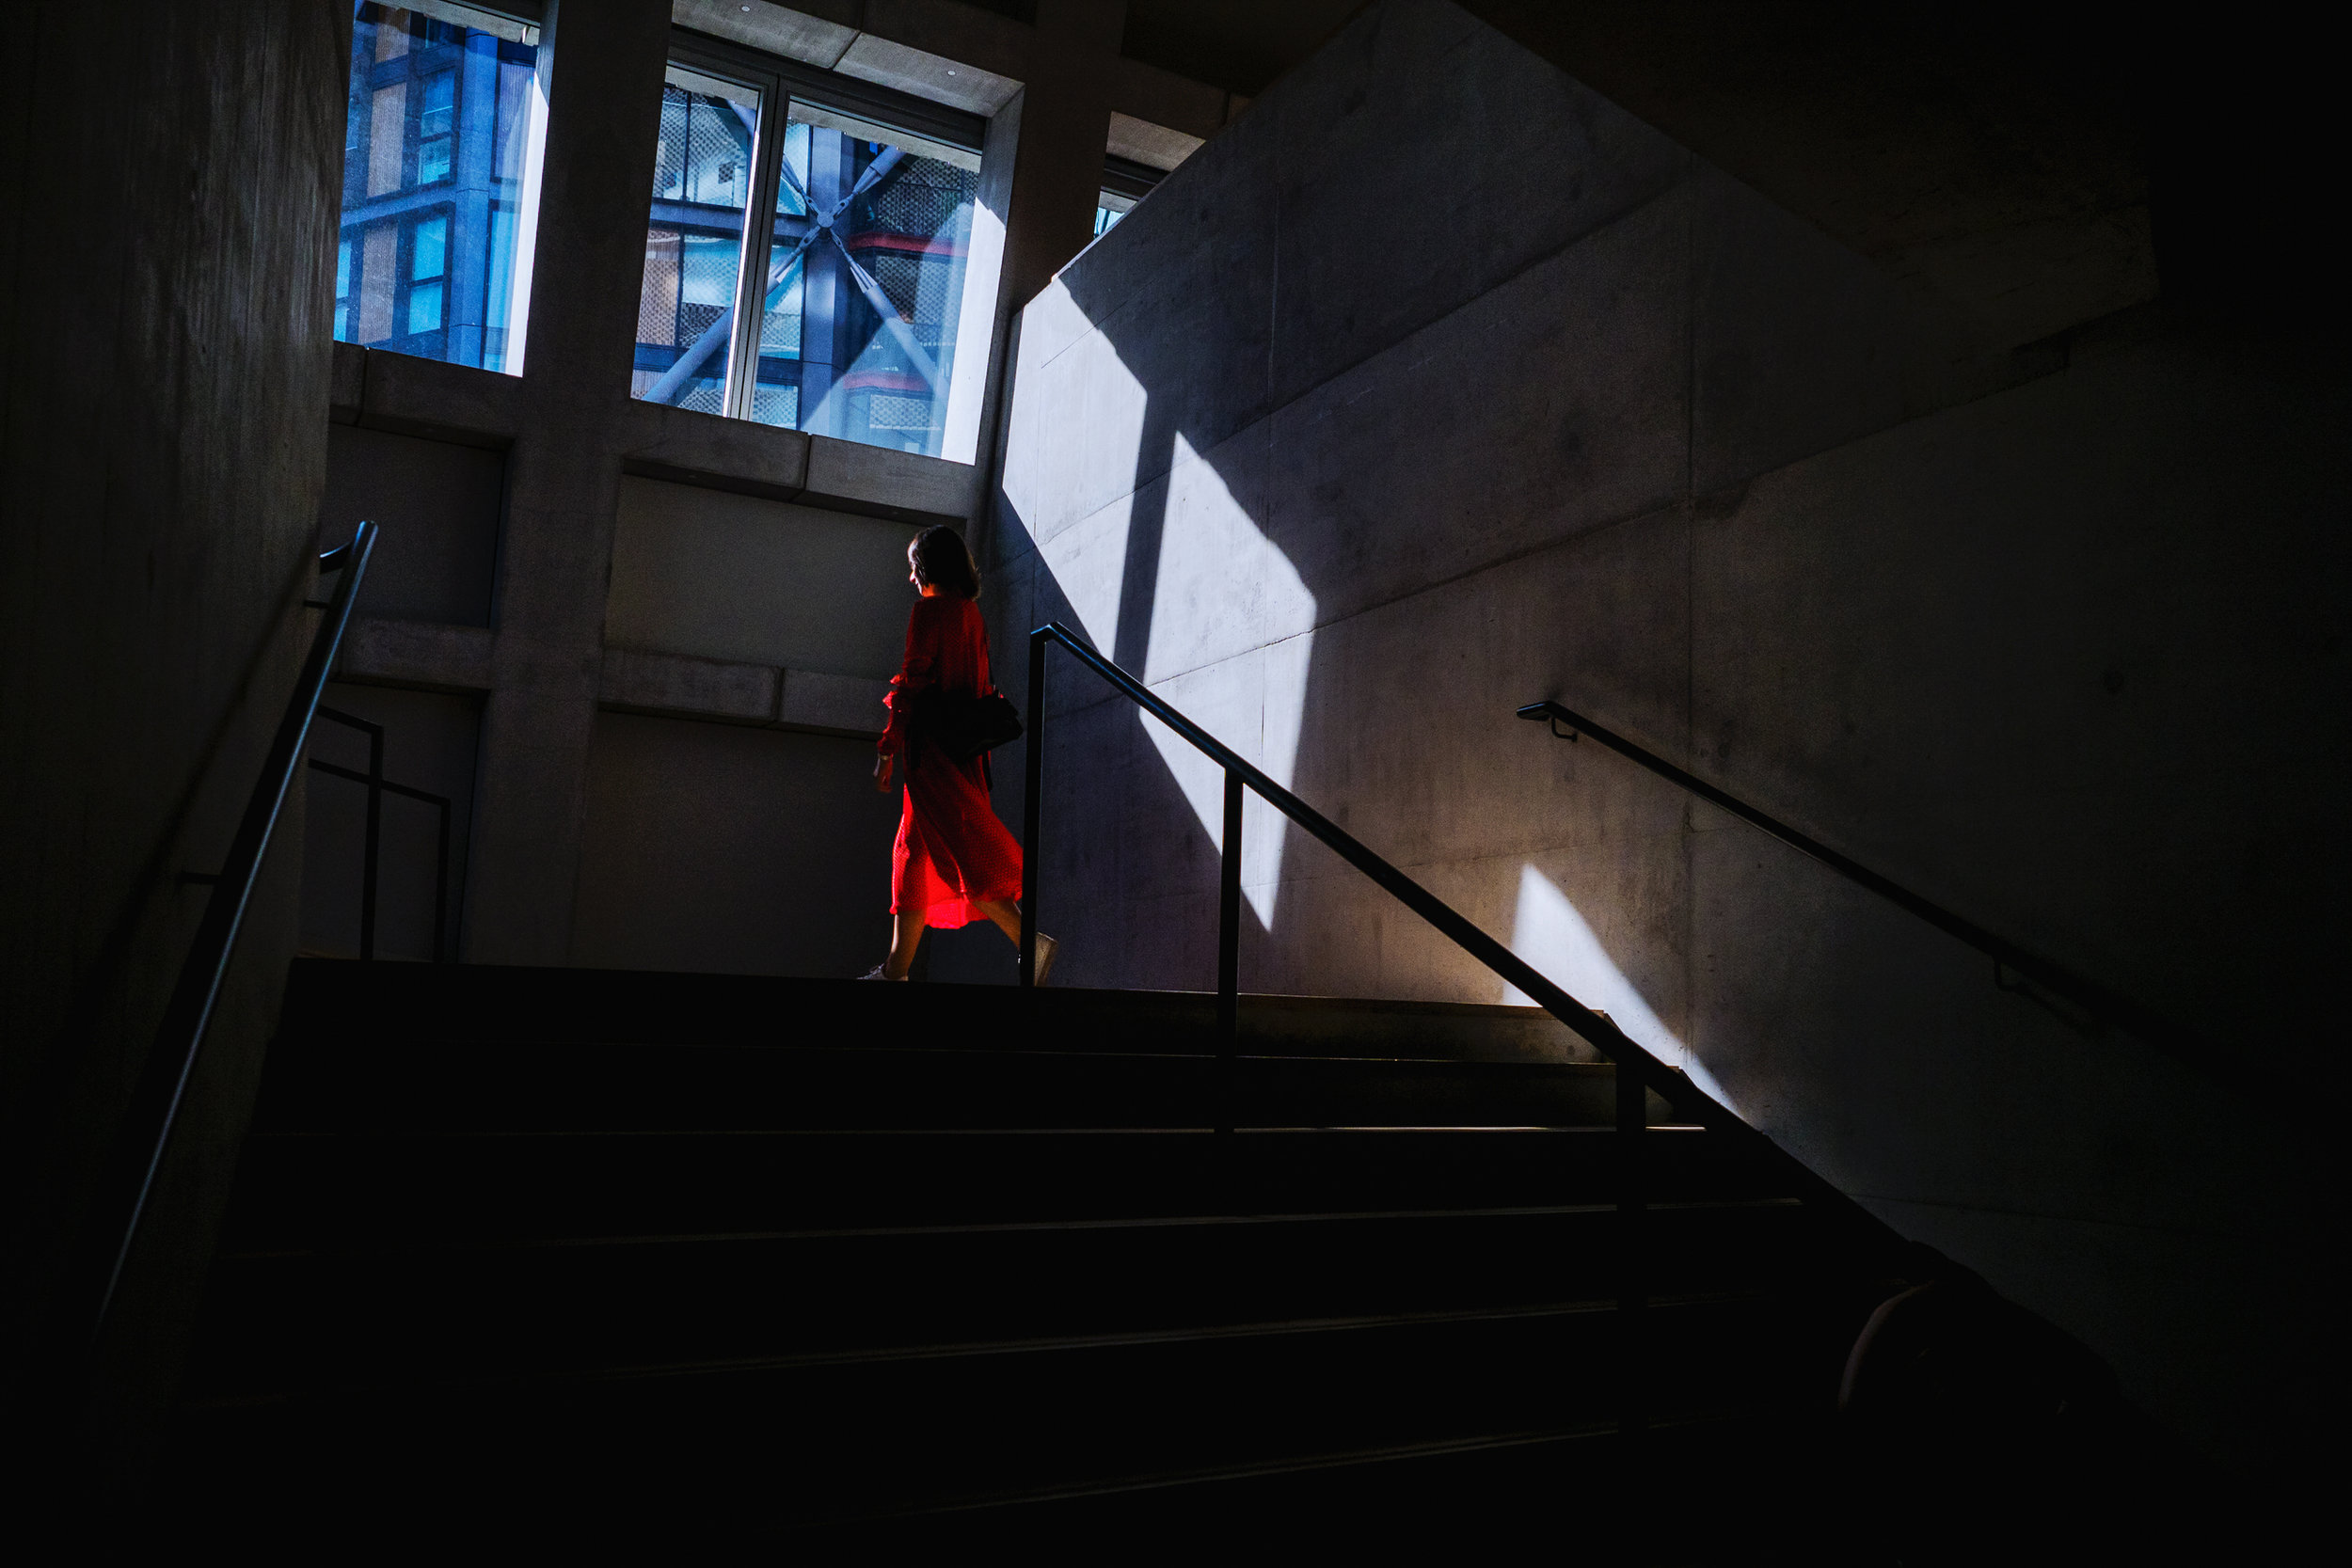 Craig-Reilly-Photography-Tate-Modern-Shadow.jpg